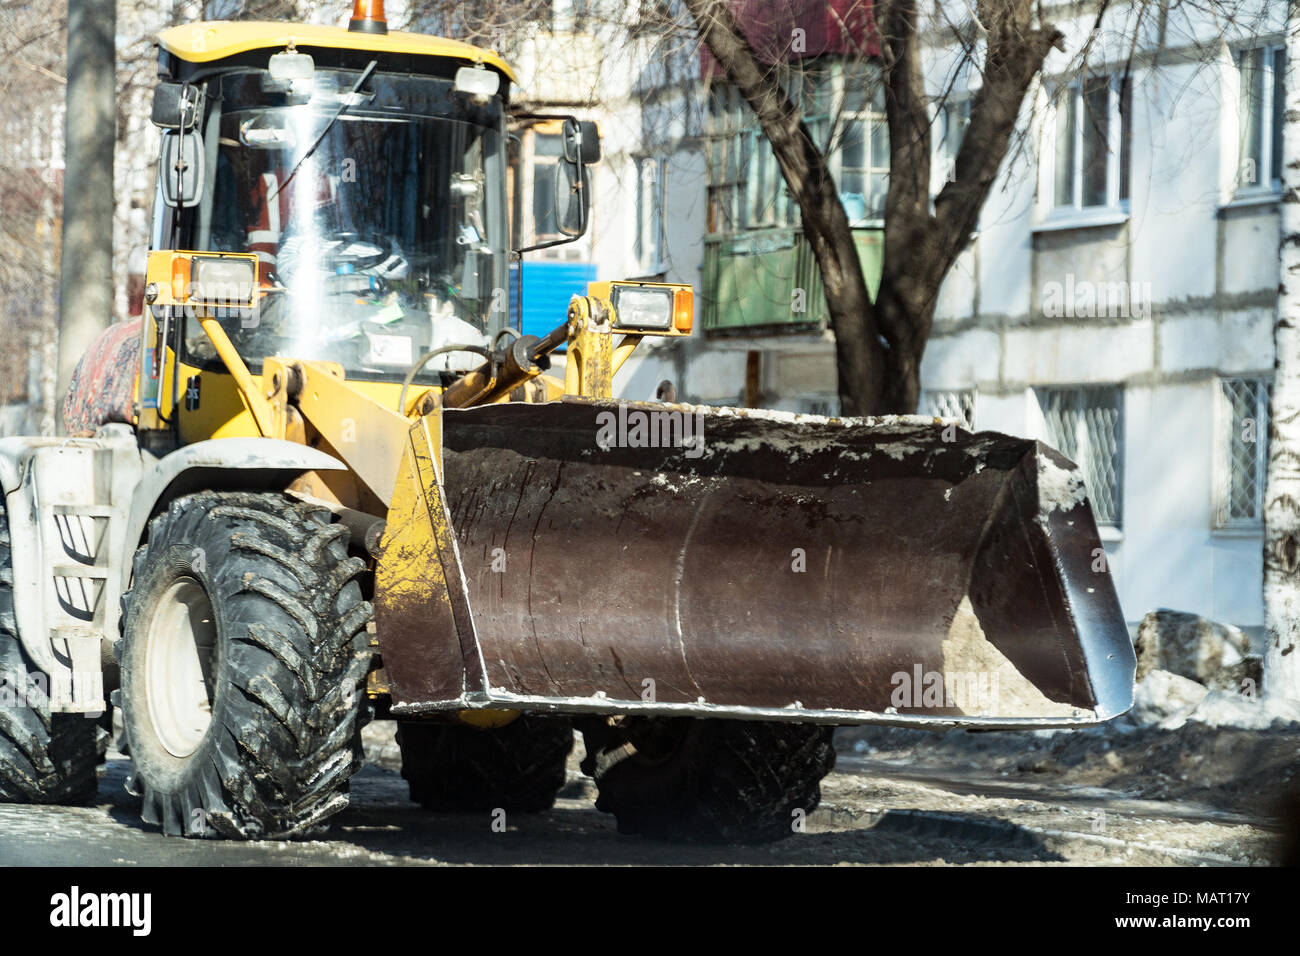 Tractor with snowplow on the street of the city - Stock Image